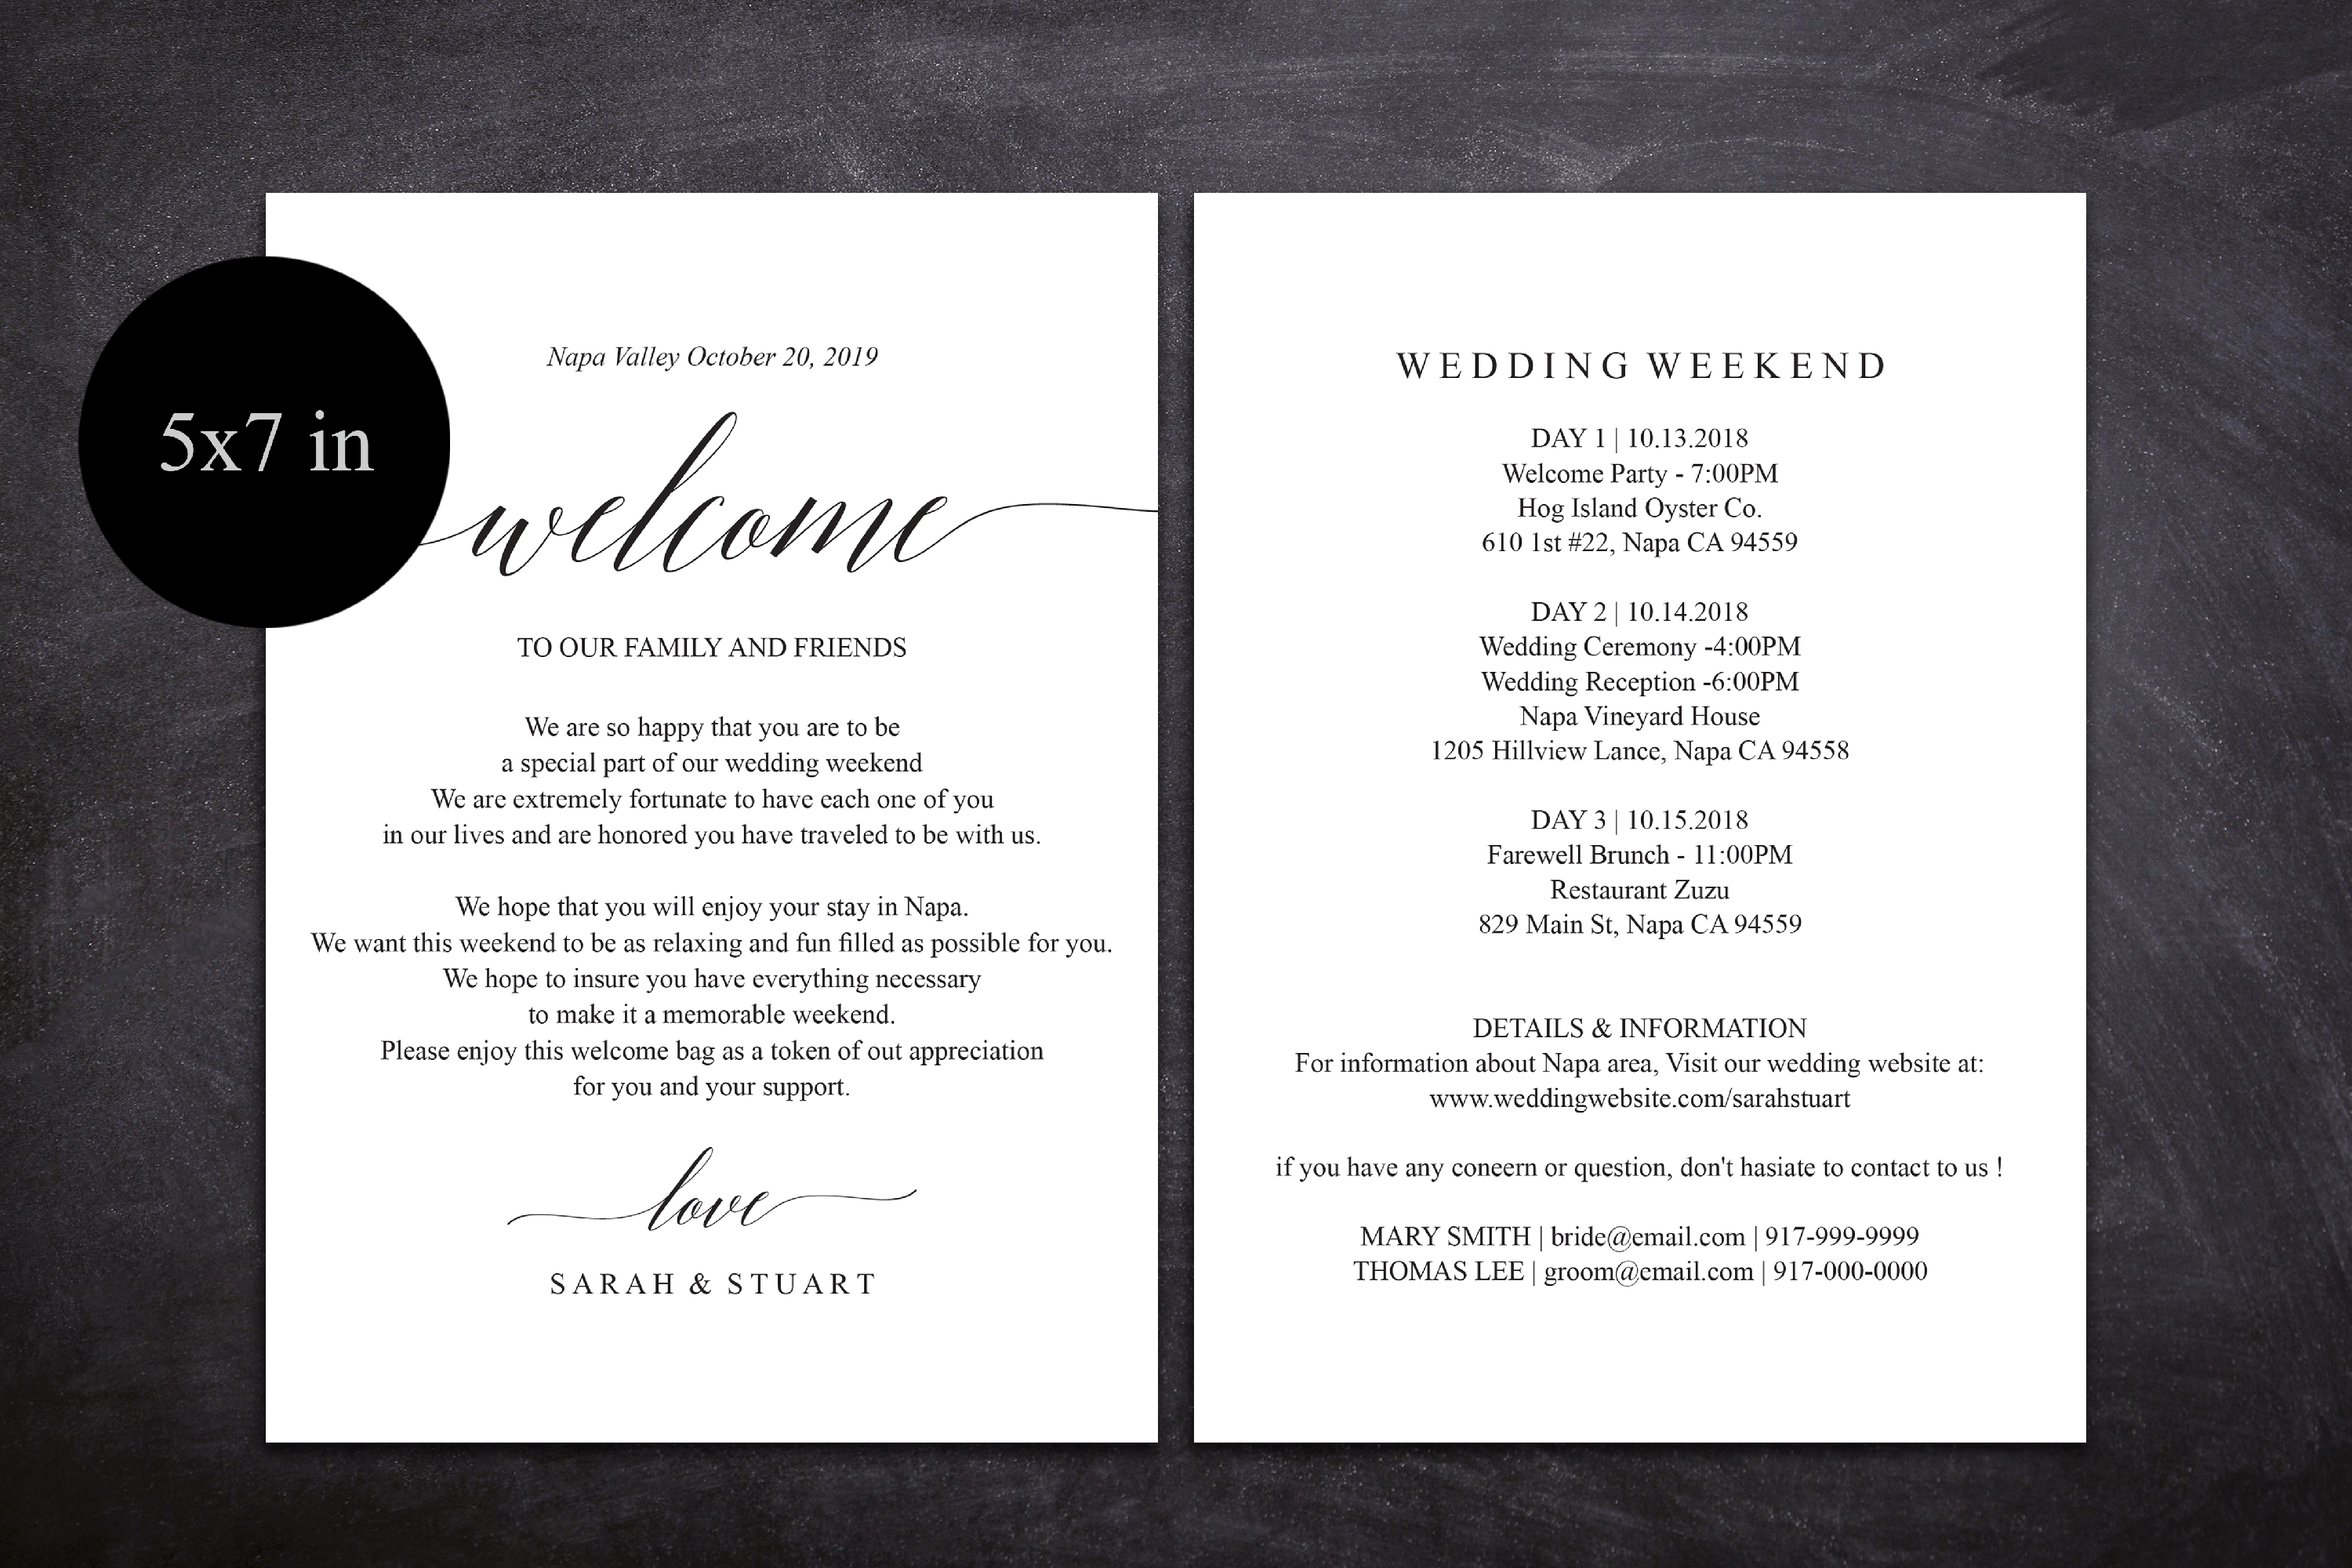 Wedding Itinerary Card, Welcome Note, Printable Wedding example image 2